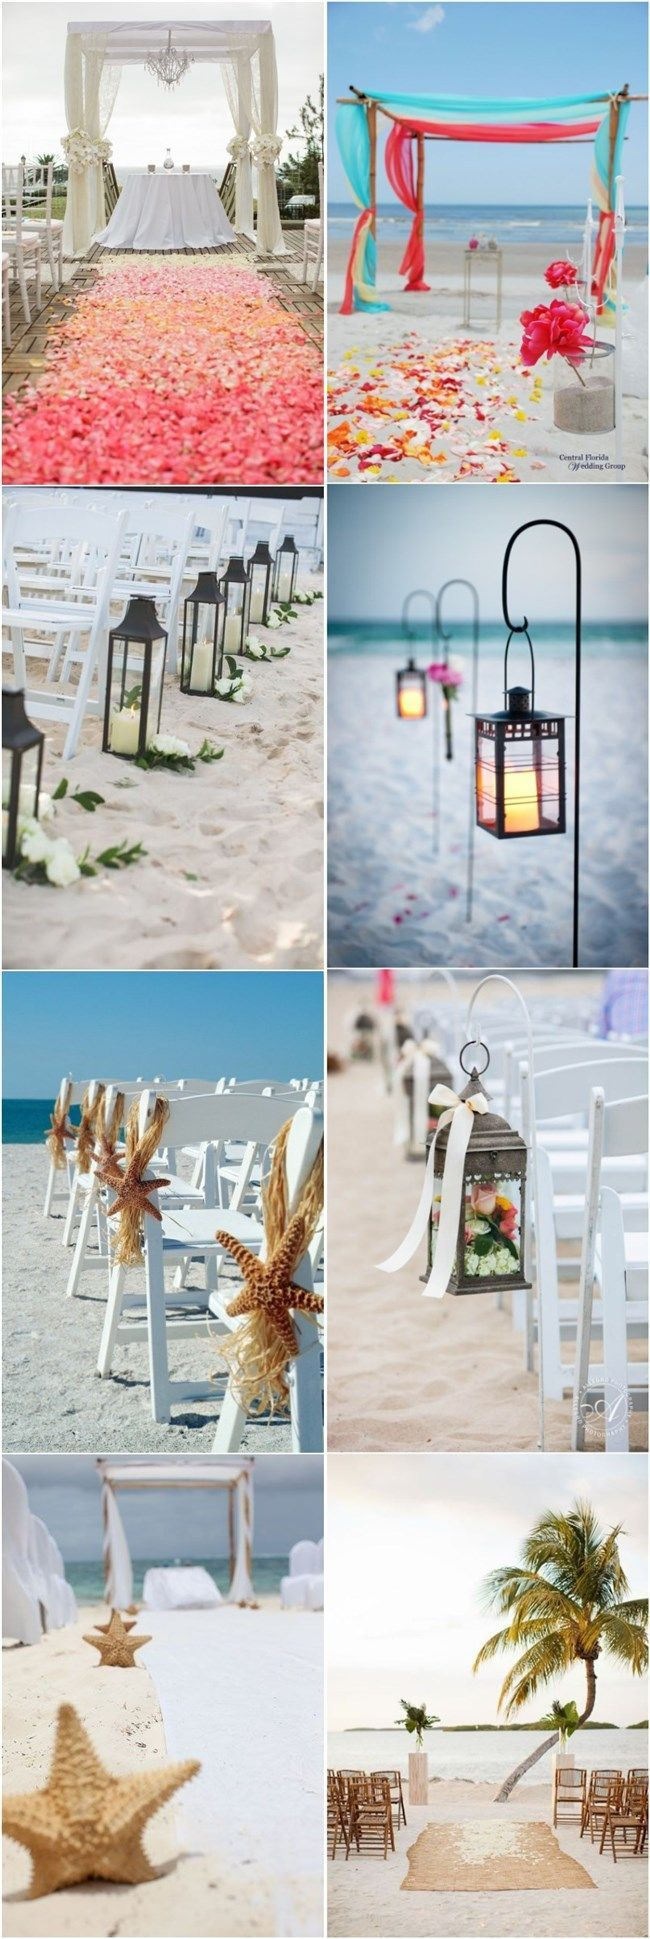 50 beach wedding aisle decoration ideas - Beach Decorations